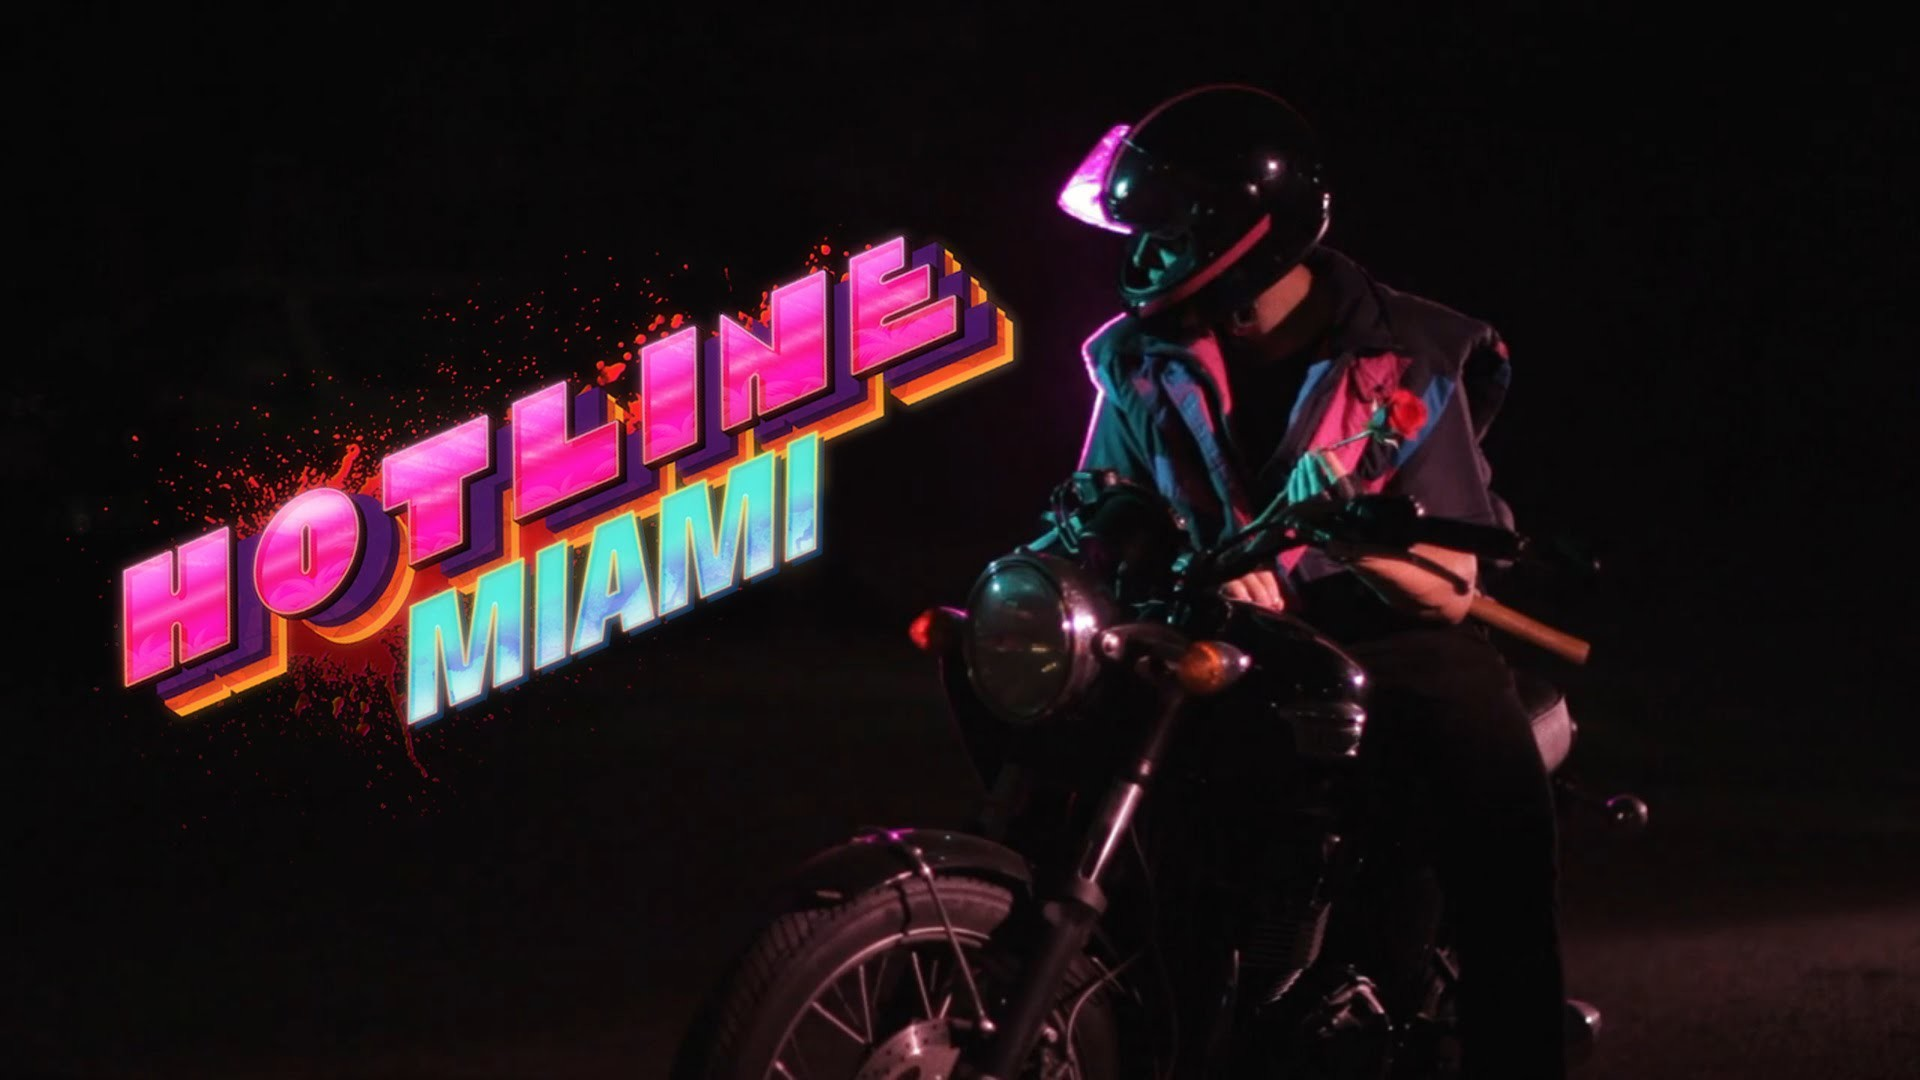 Res: 1920x1080, Hotline Miami 2: Wrong Number HD Wallpapers 8 - 1920 X 1080